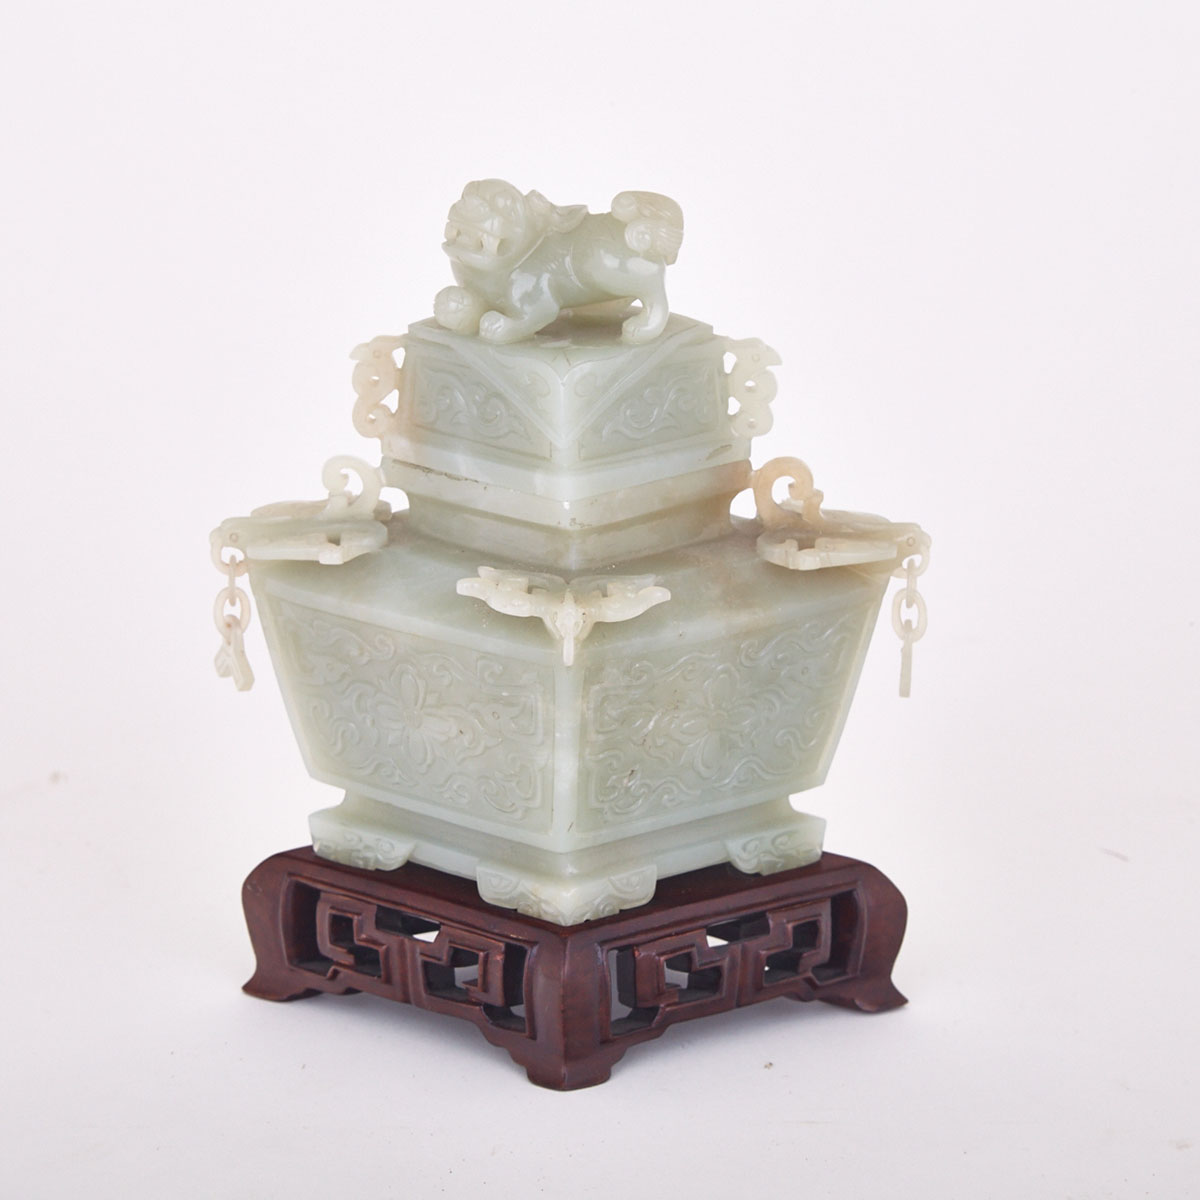 Hardstone Censer and Cover